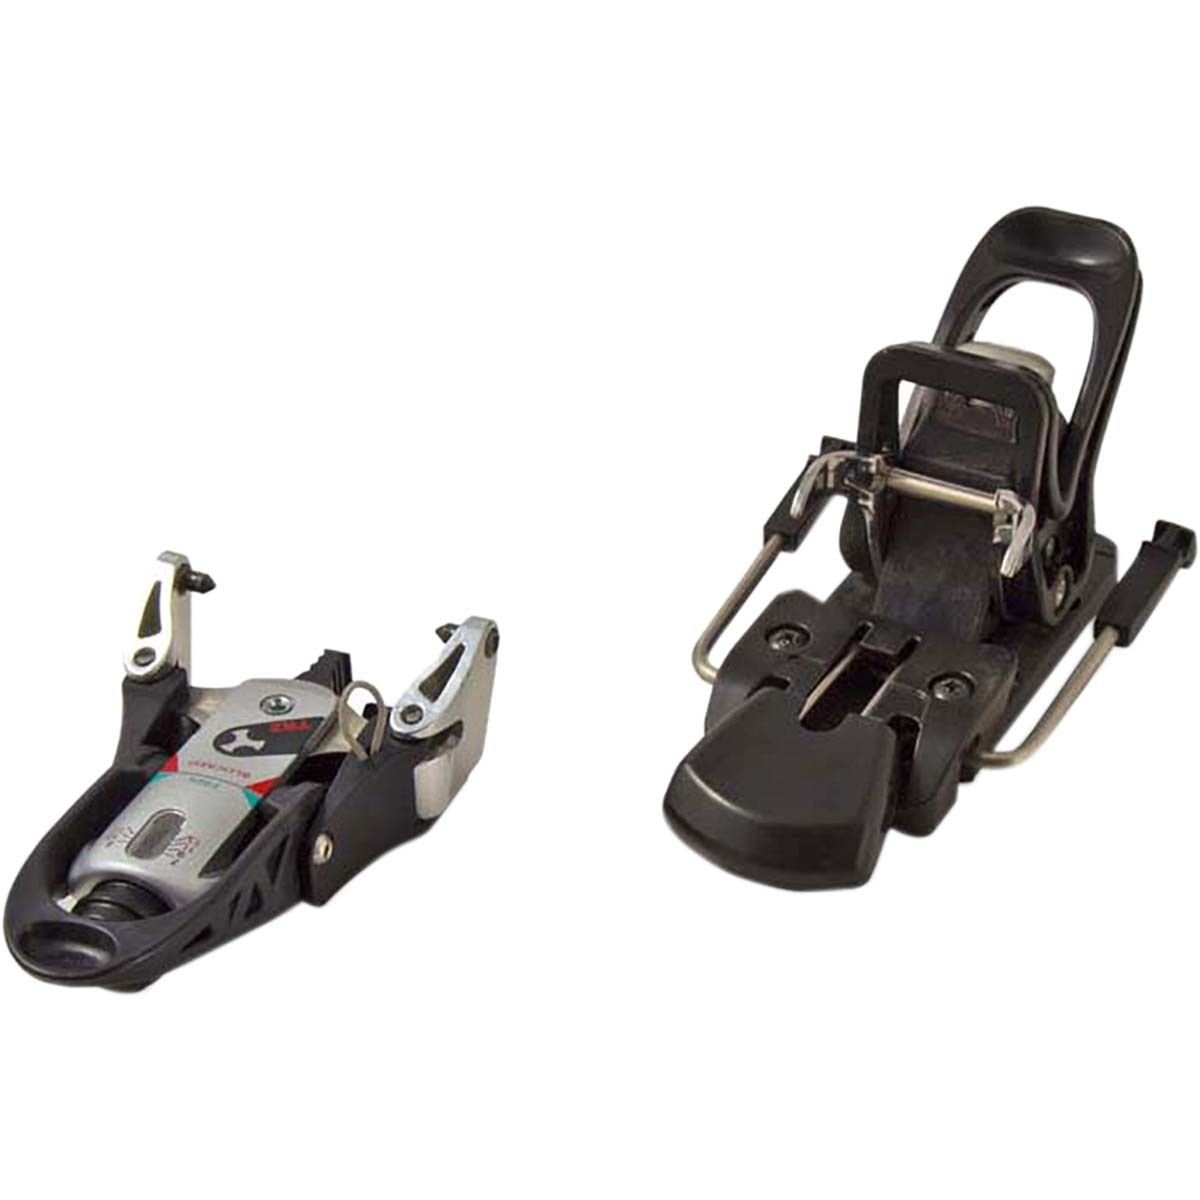 La Sportiva Ski Trab TR2 7-13 Bindings - 104mm by La Sportiva